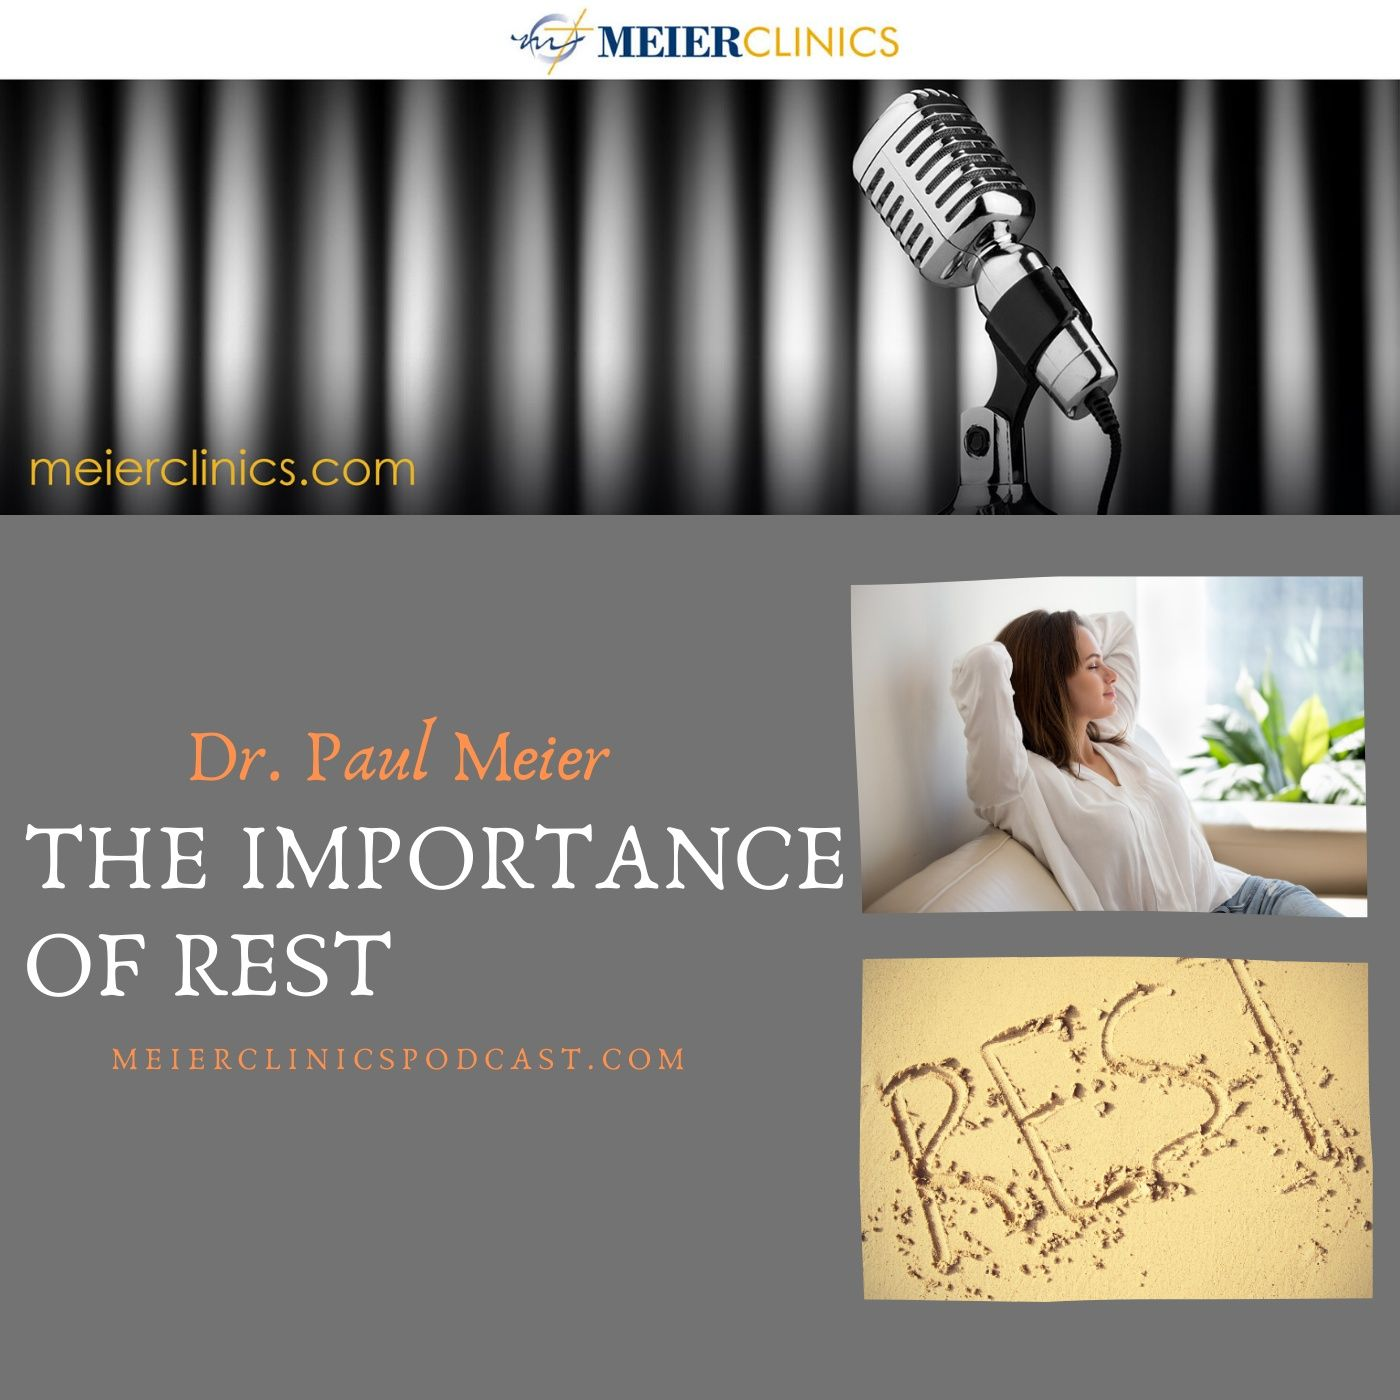 The Importance of Rest with Dr. Paul Meier